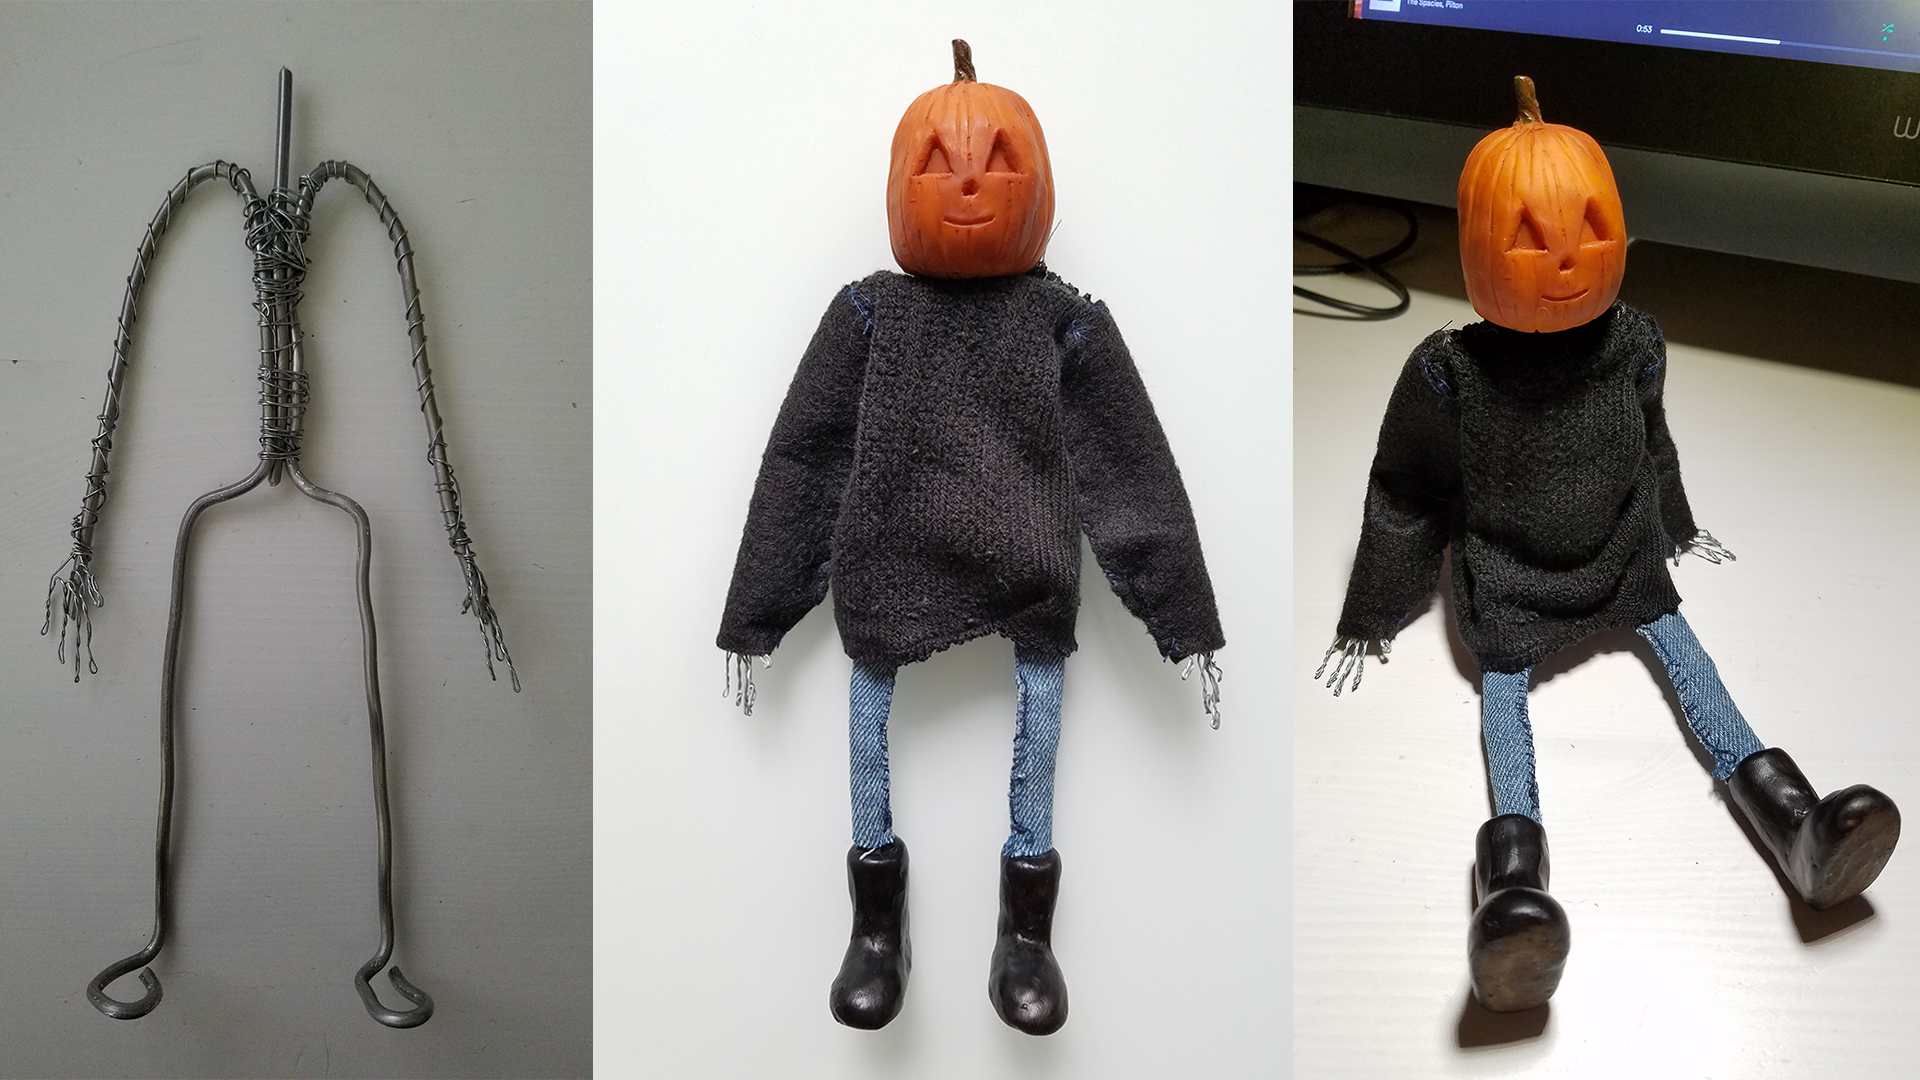 Puppet - Made in Toy Design class. Materials: wire armature, sculpey, acrylic paint, scrap fabric